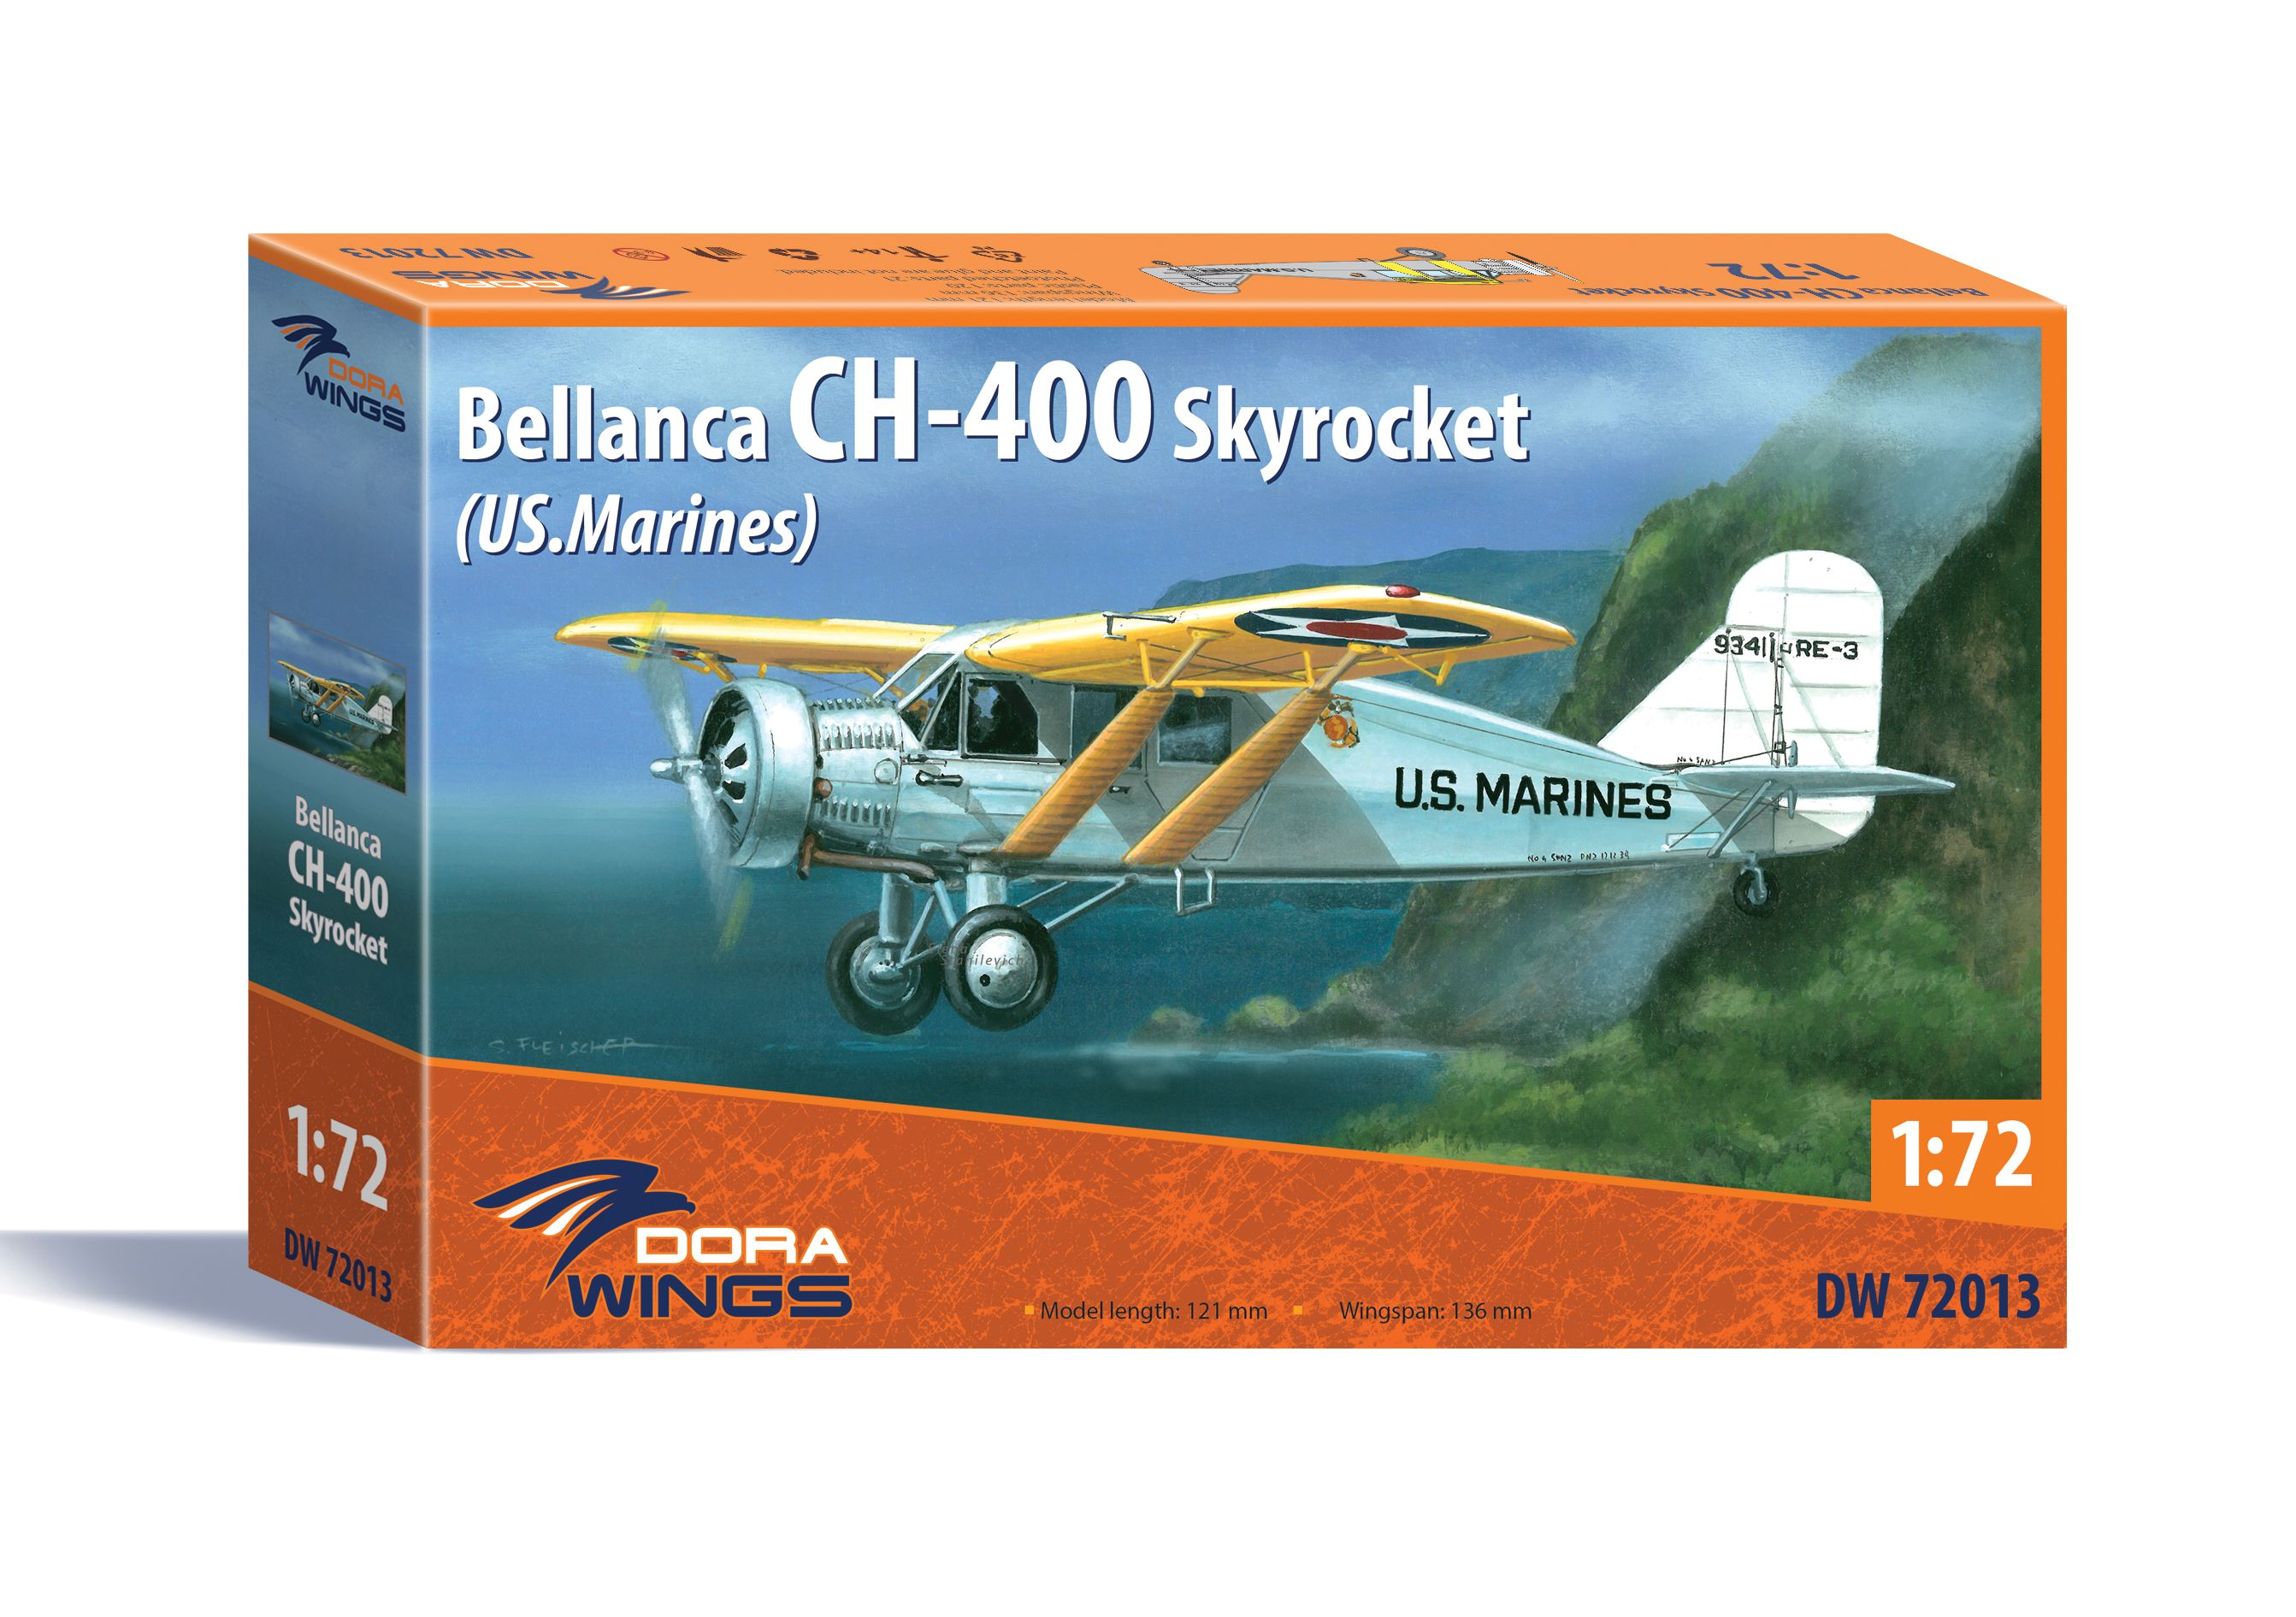 Dora Wings Bellanca CH-400 Skyrocket